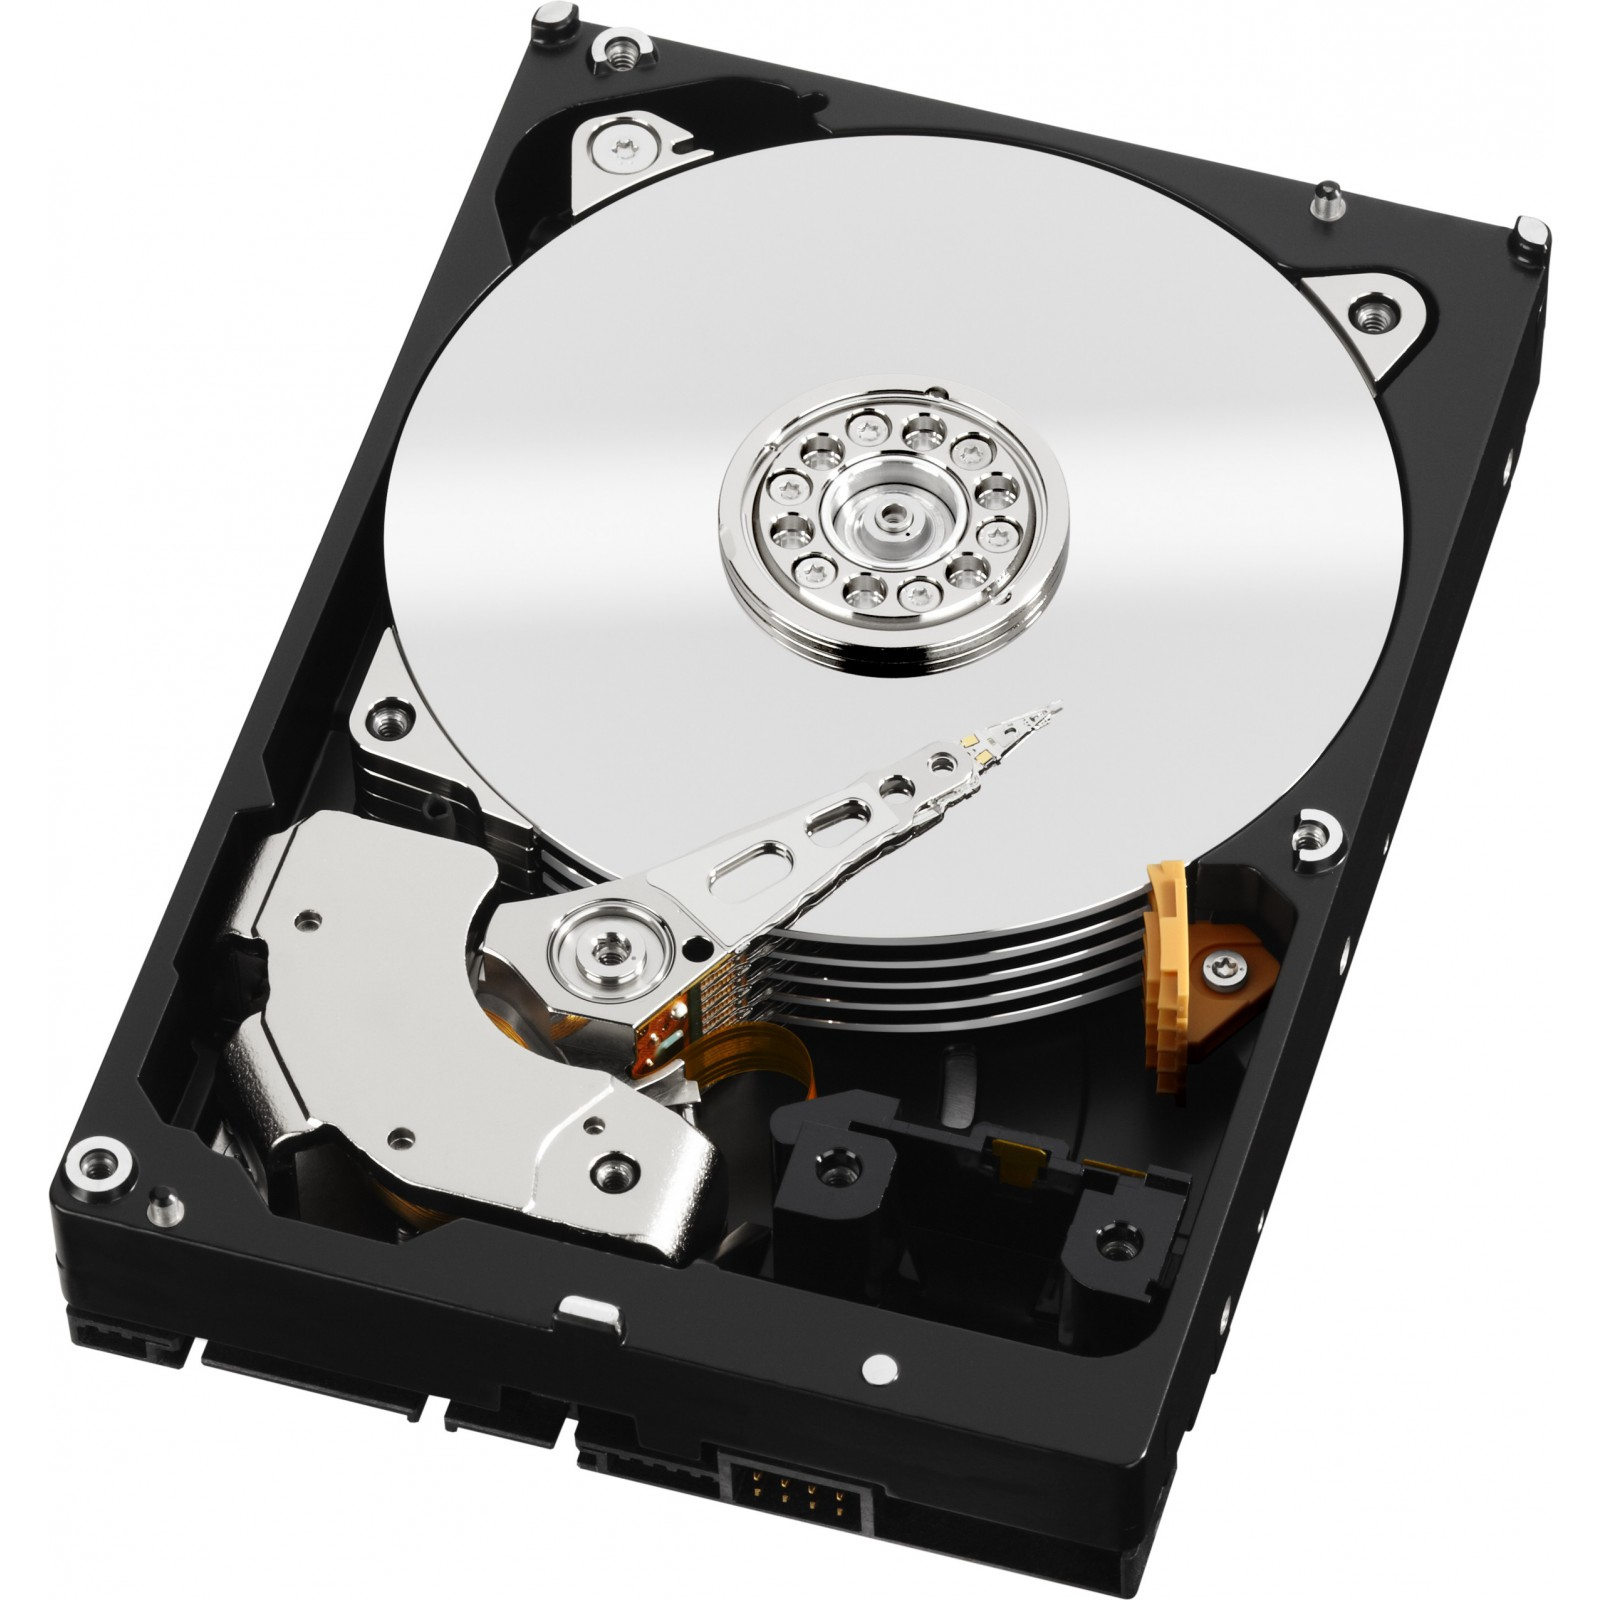 WESTERN DIGITAL RE 4TB 4000GB SAS INTERNAL HARD DRIVE REFURBISHED